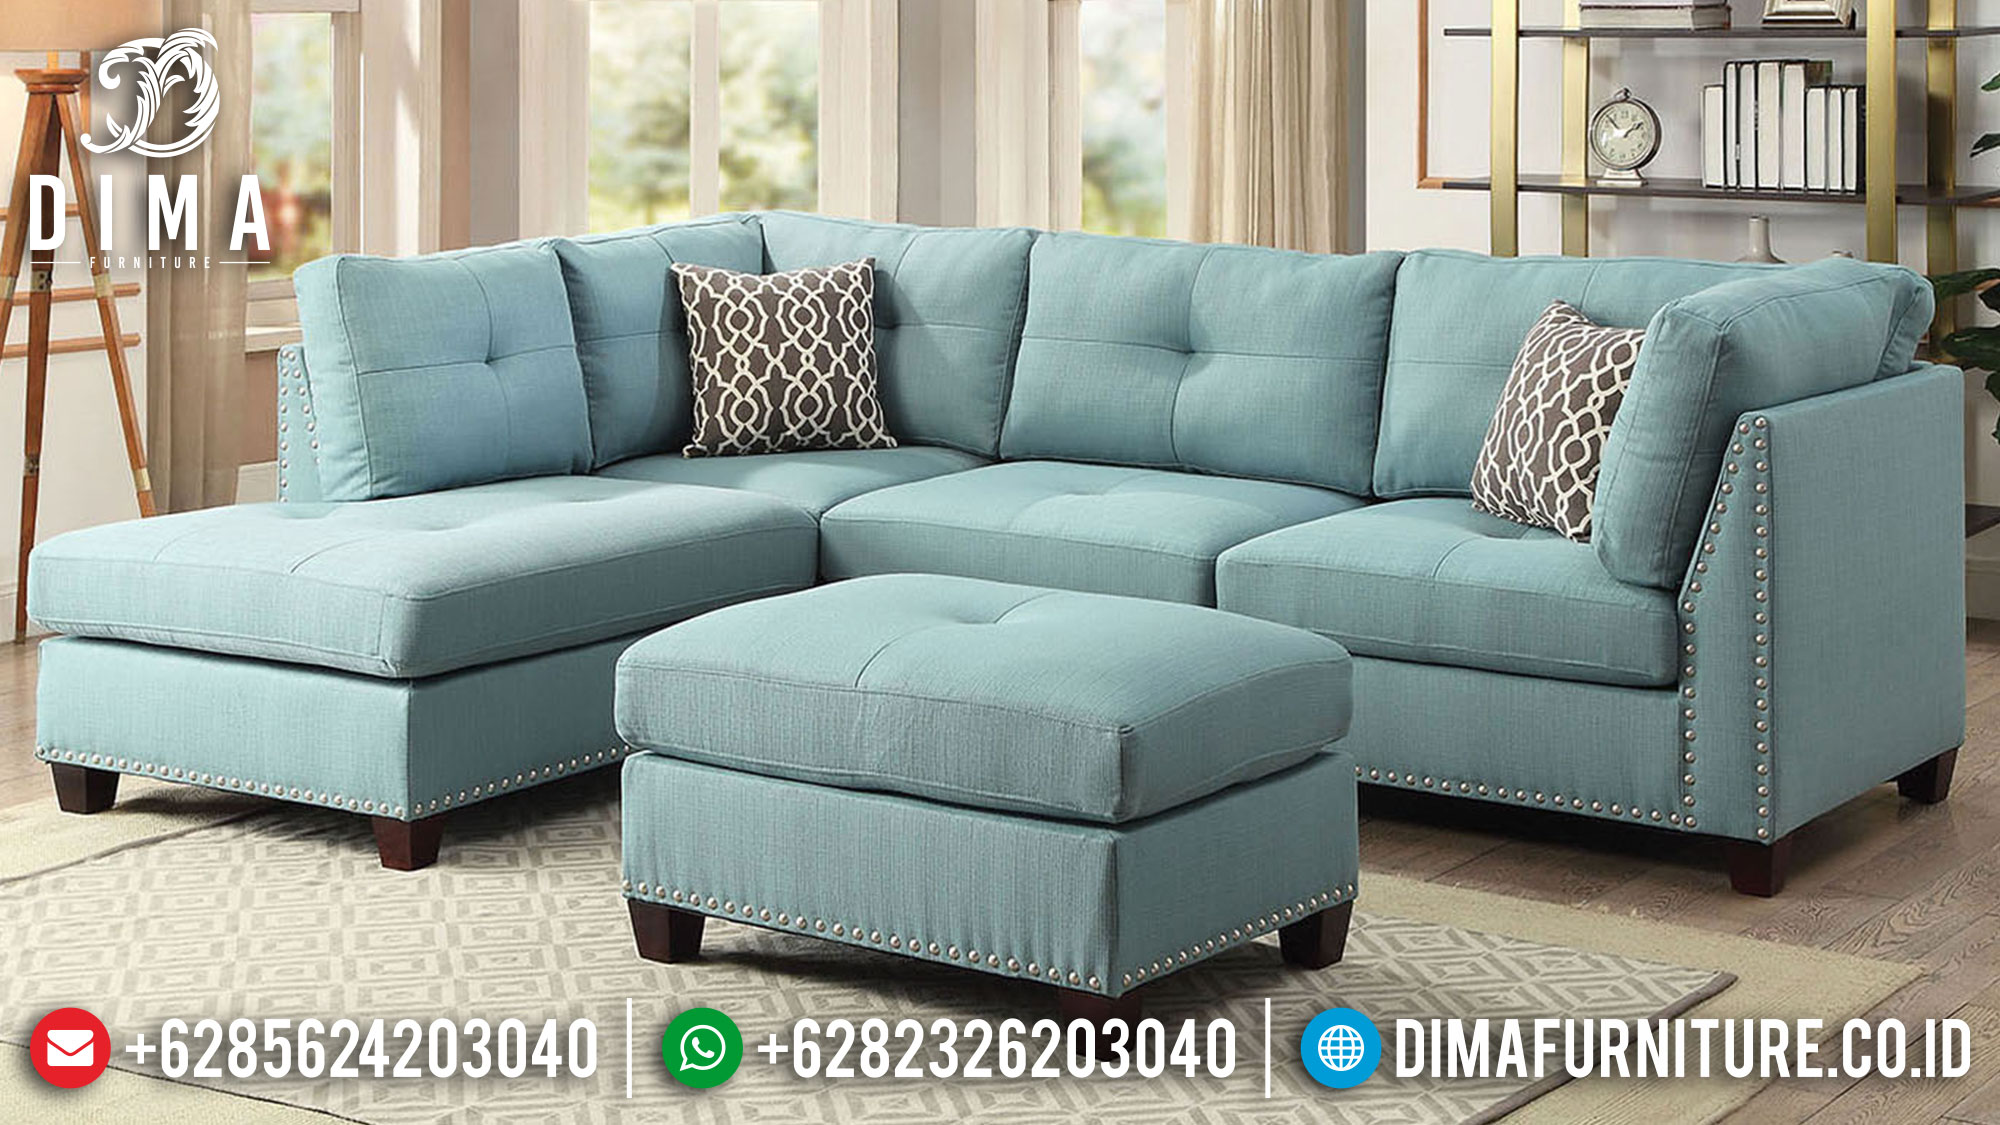 New Sofa Tamu Minimalis Jepara Classic Simple Design Furniture Jepara Luxury Mm-0894